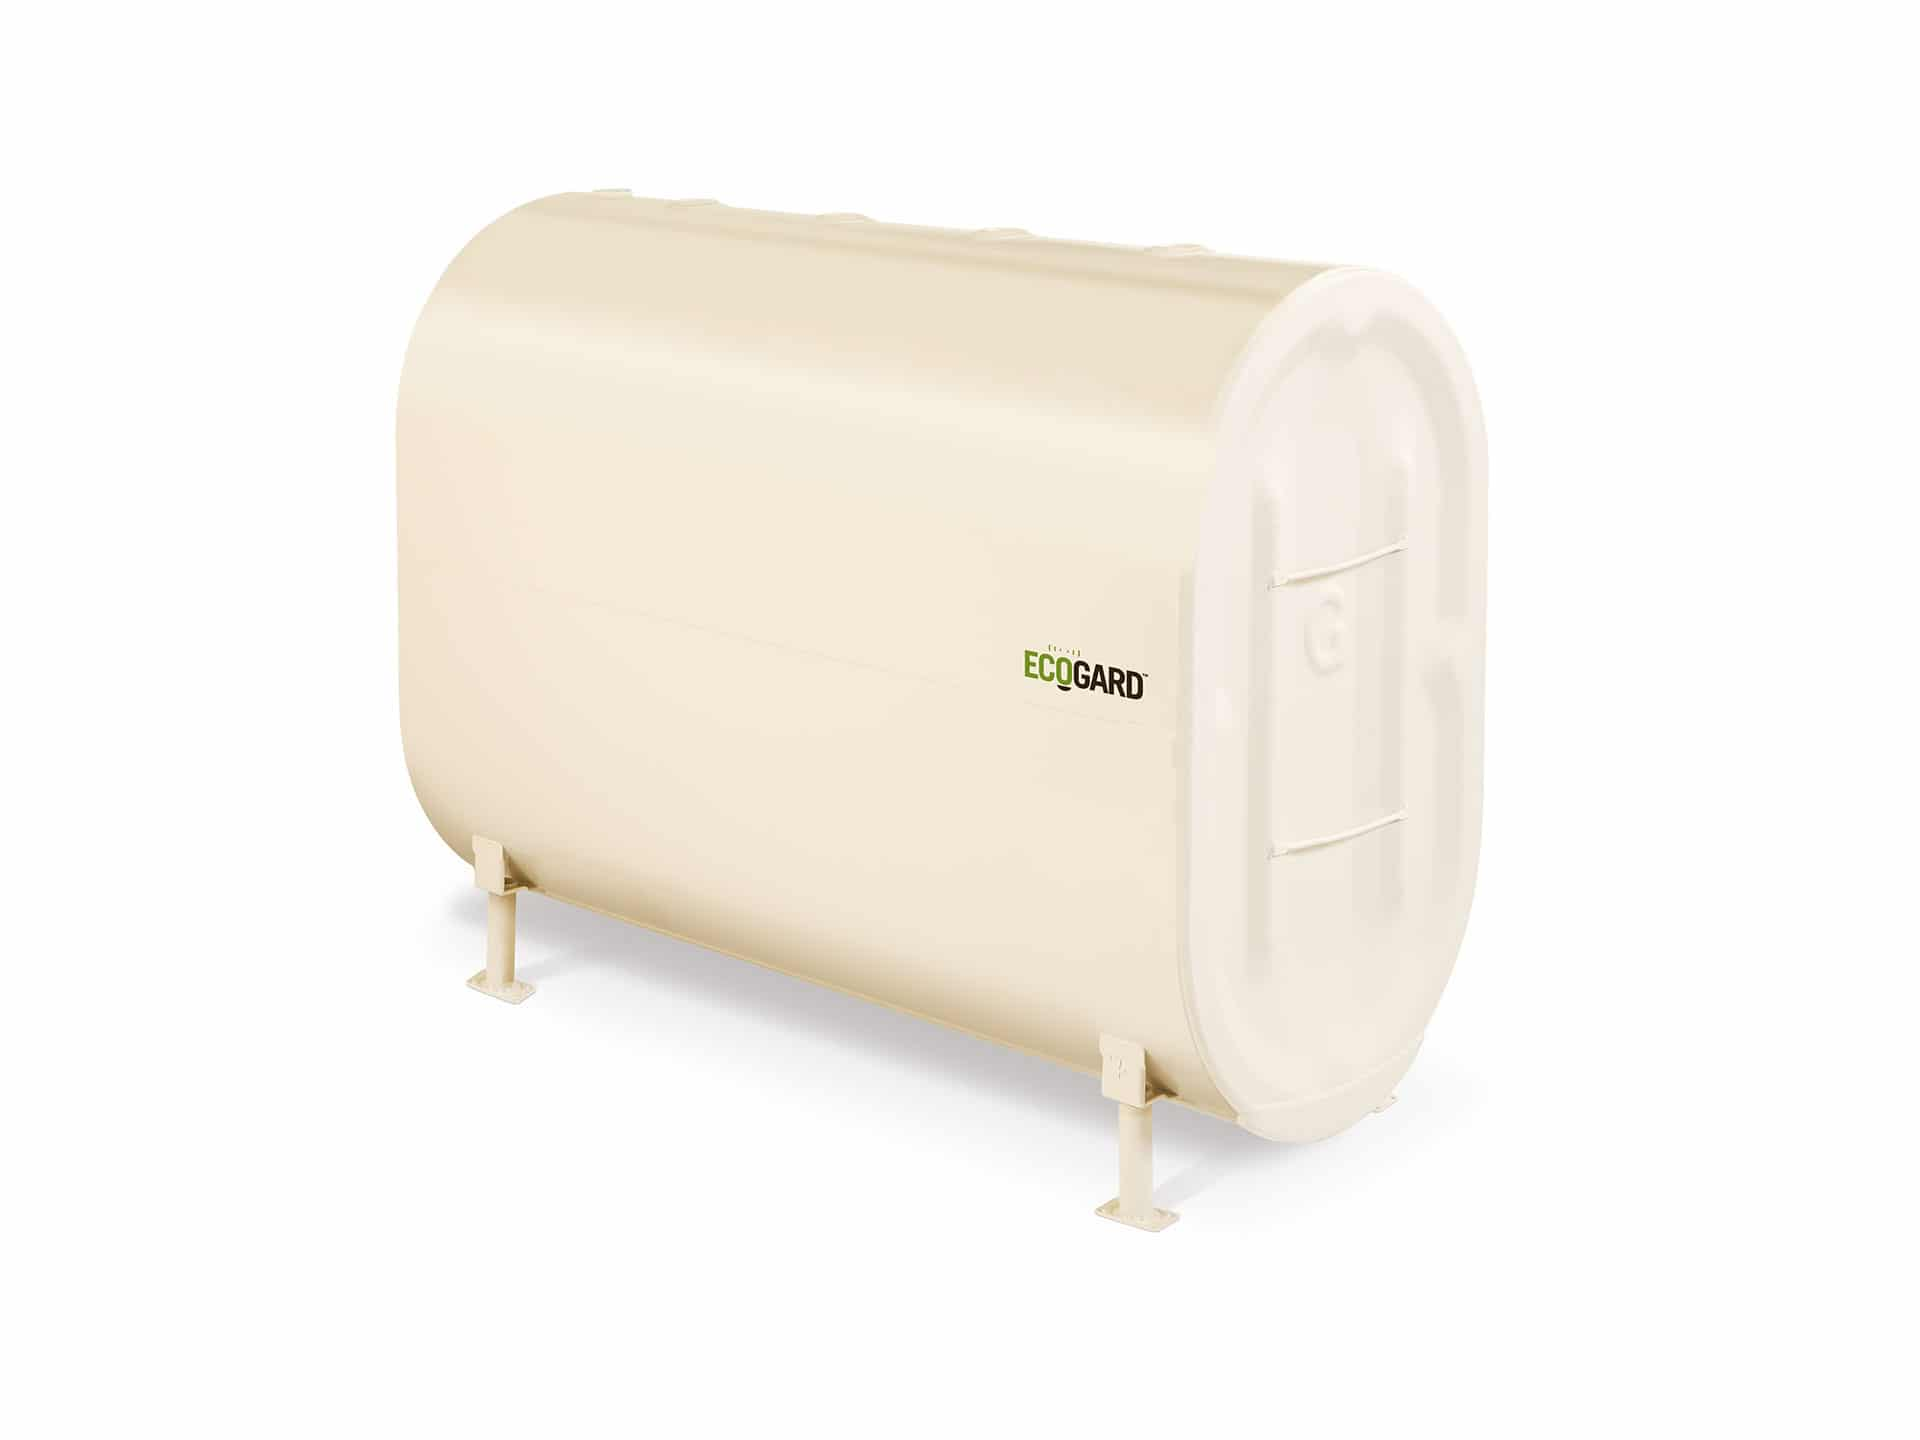 Ecogard double bottom tank | Granby Industries